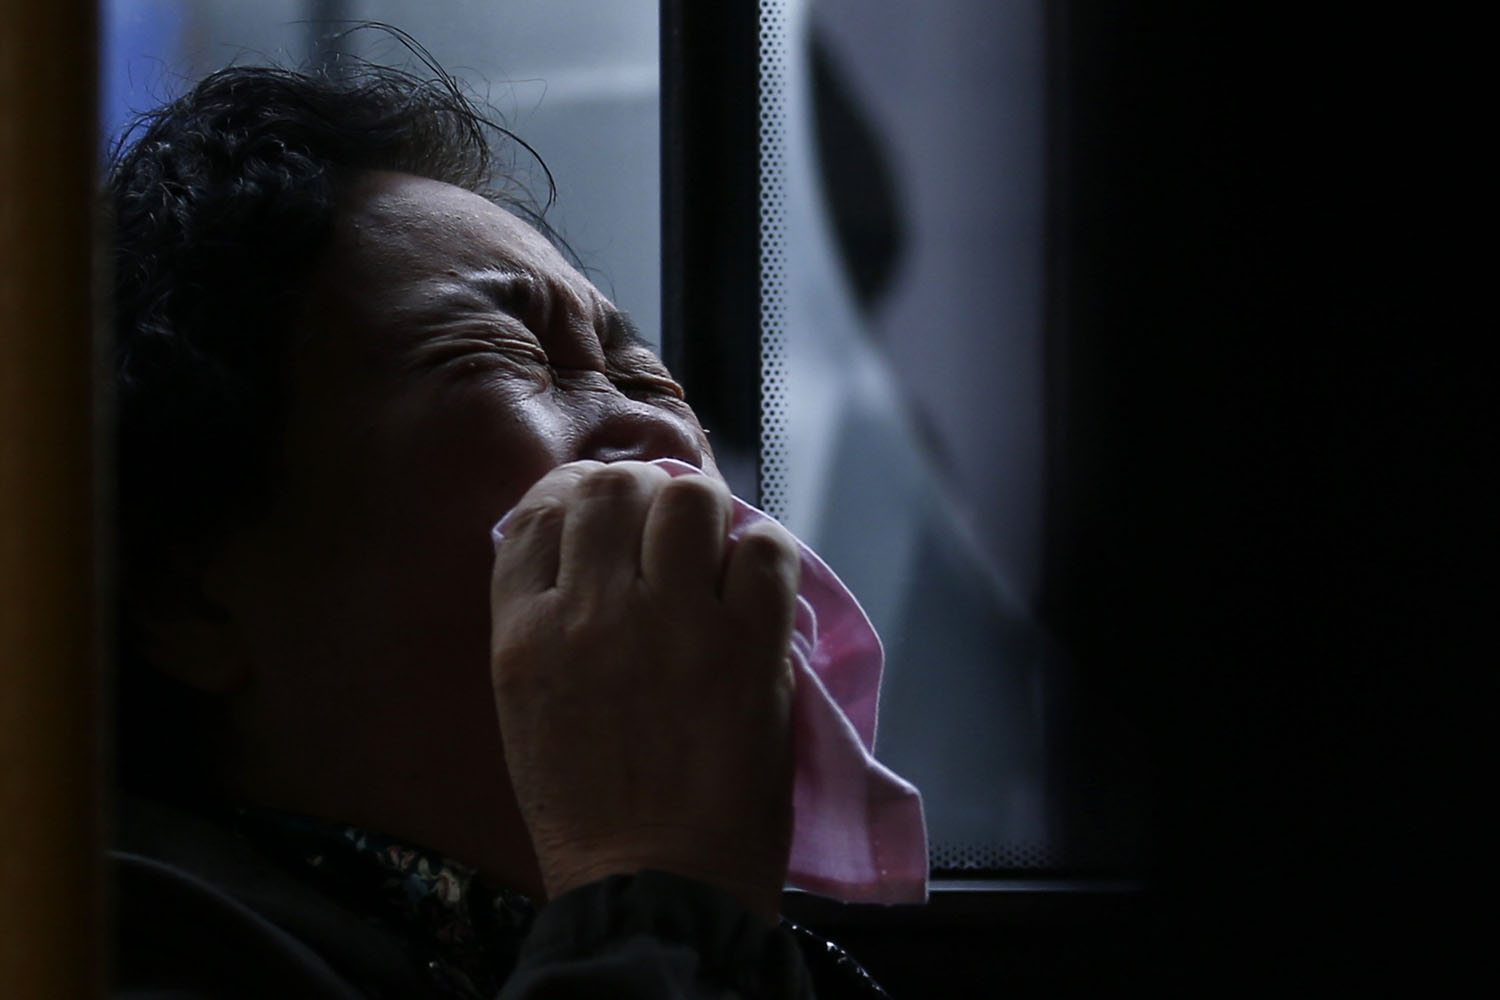 Mar. 25, 2014. A family member of a passenger onboard Malaysia Airlines Flight MH370 cries on a bus before heading to the Malaysian embassy, outside Lido Hotel in Beijing.